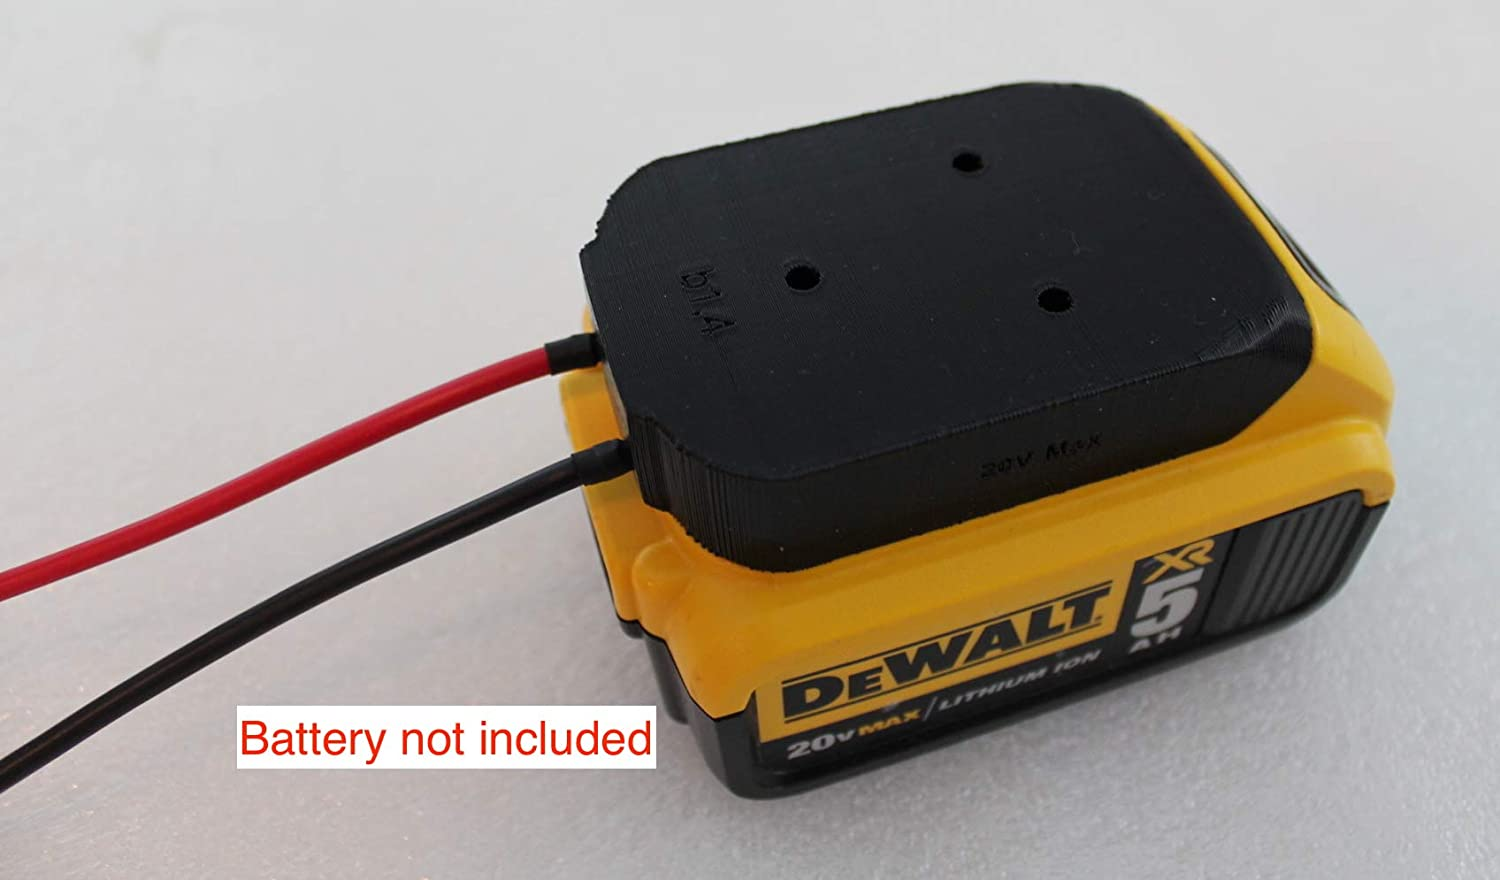 battery adapter for DeWALT 20V Max 18v dock power connector 12 gauge robotics …